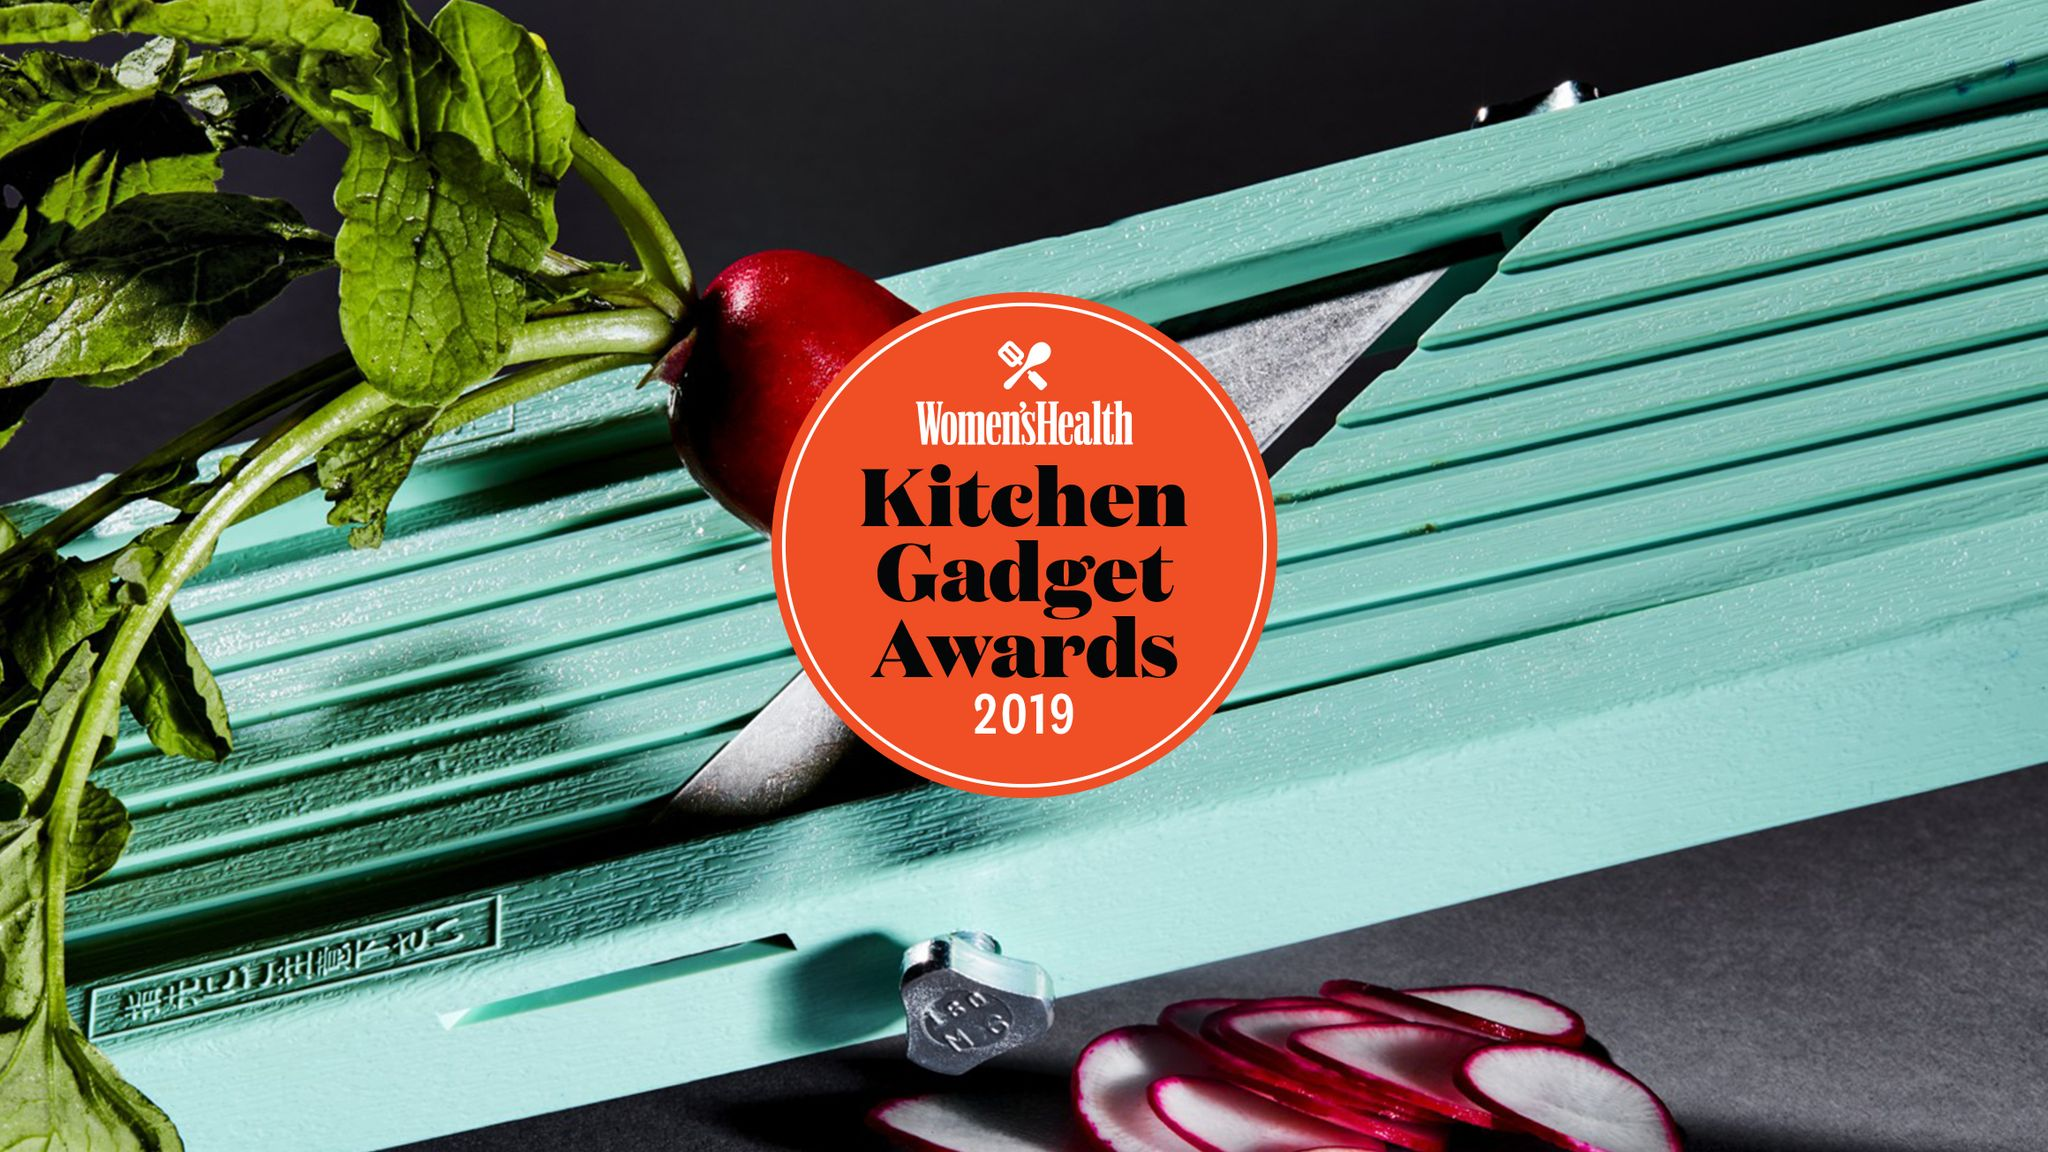 Women's Health Kitchen Gadgets Awards 2019